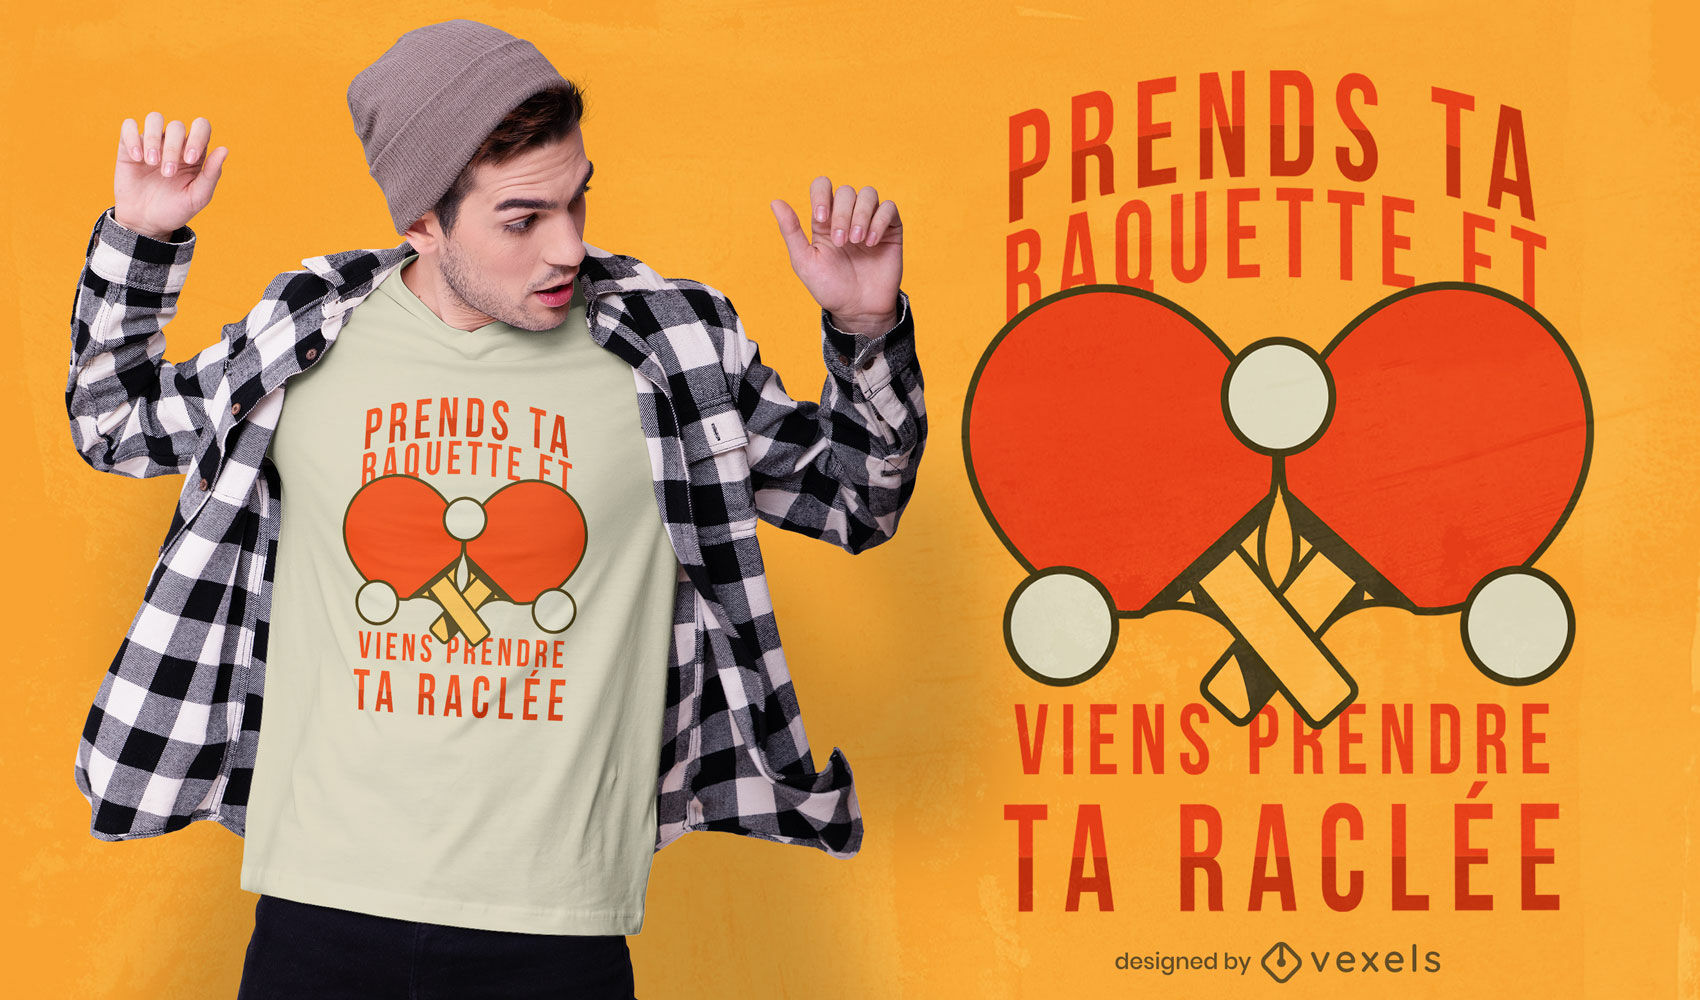 Rackets ping pong quote t-shirt design